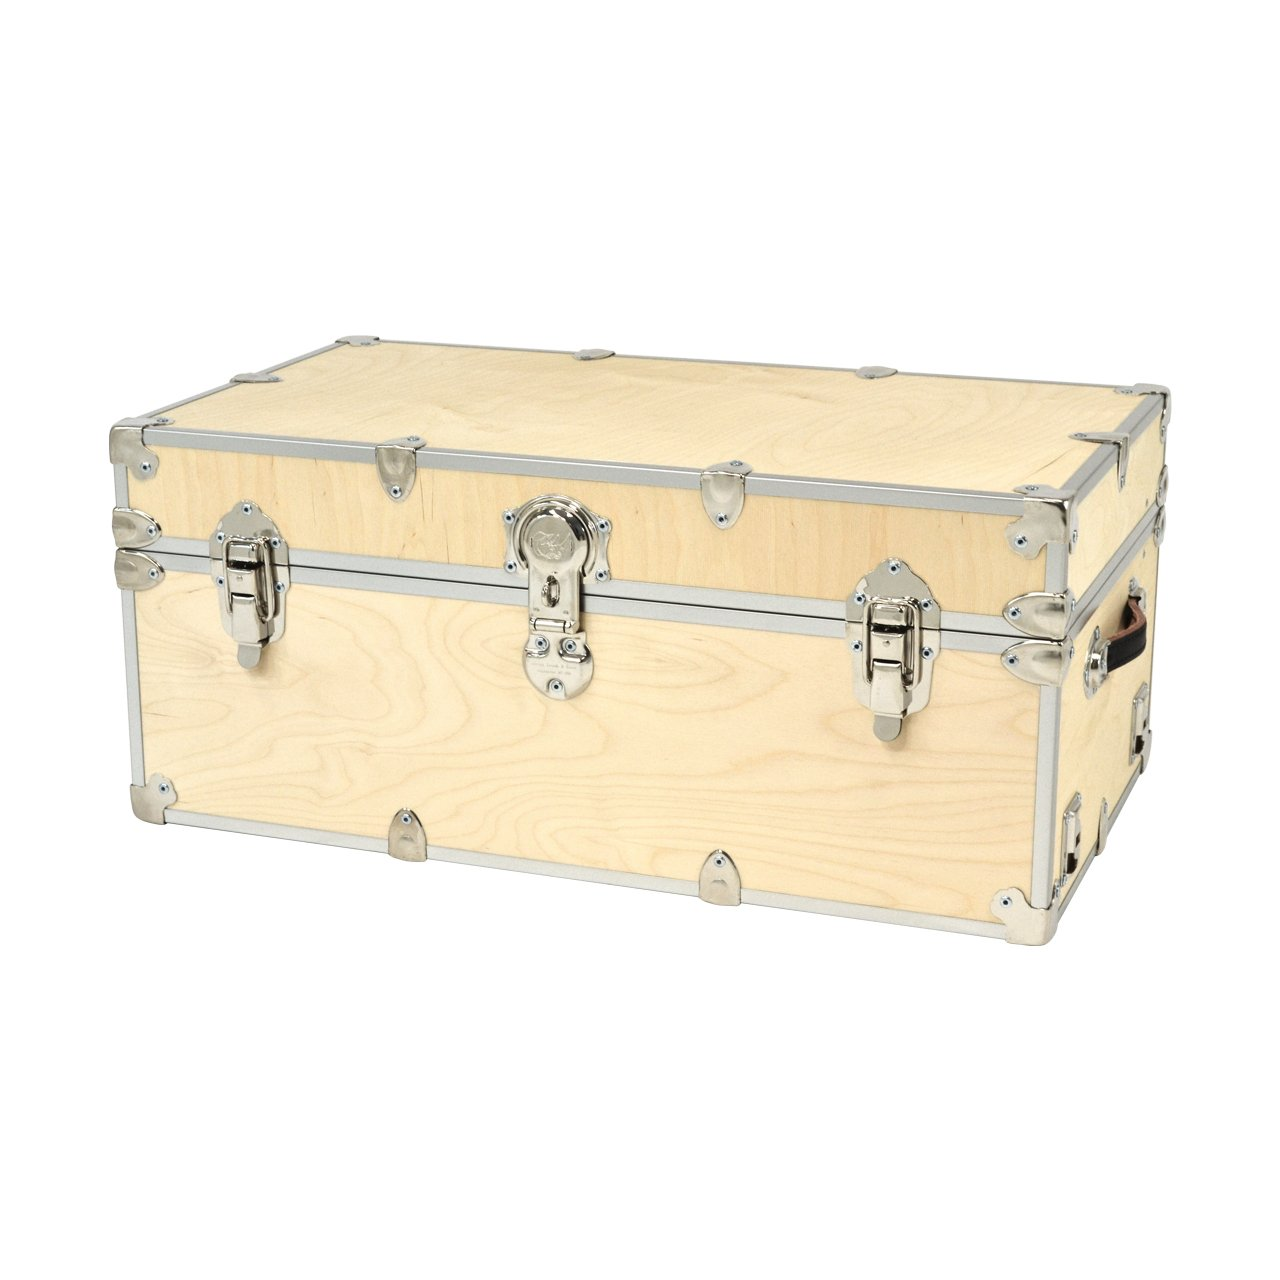 Artisans Domestic Heirloom Naked Birch Storage Box- Wood Trunk & Case for Home Décor